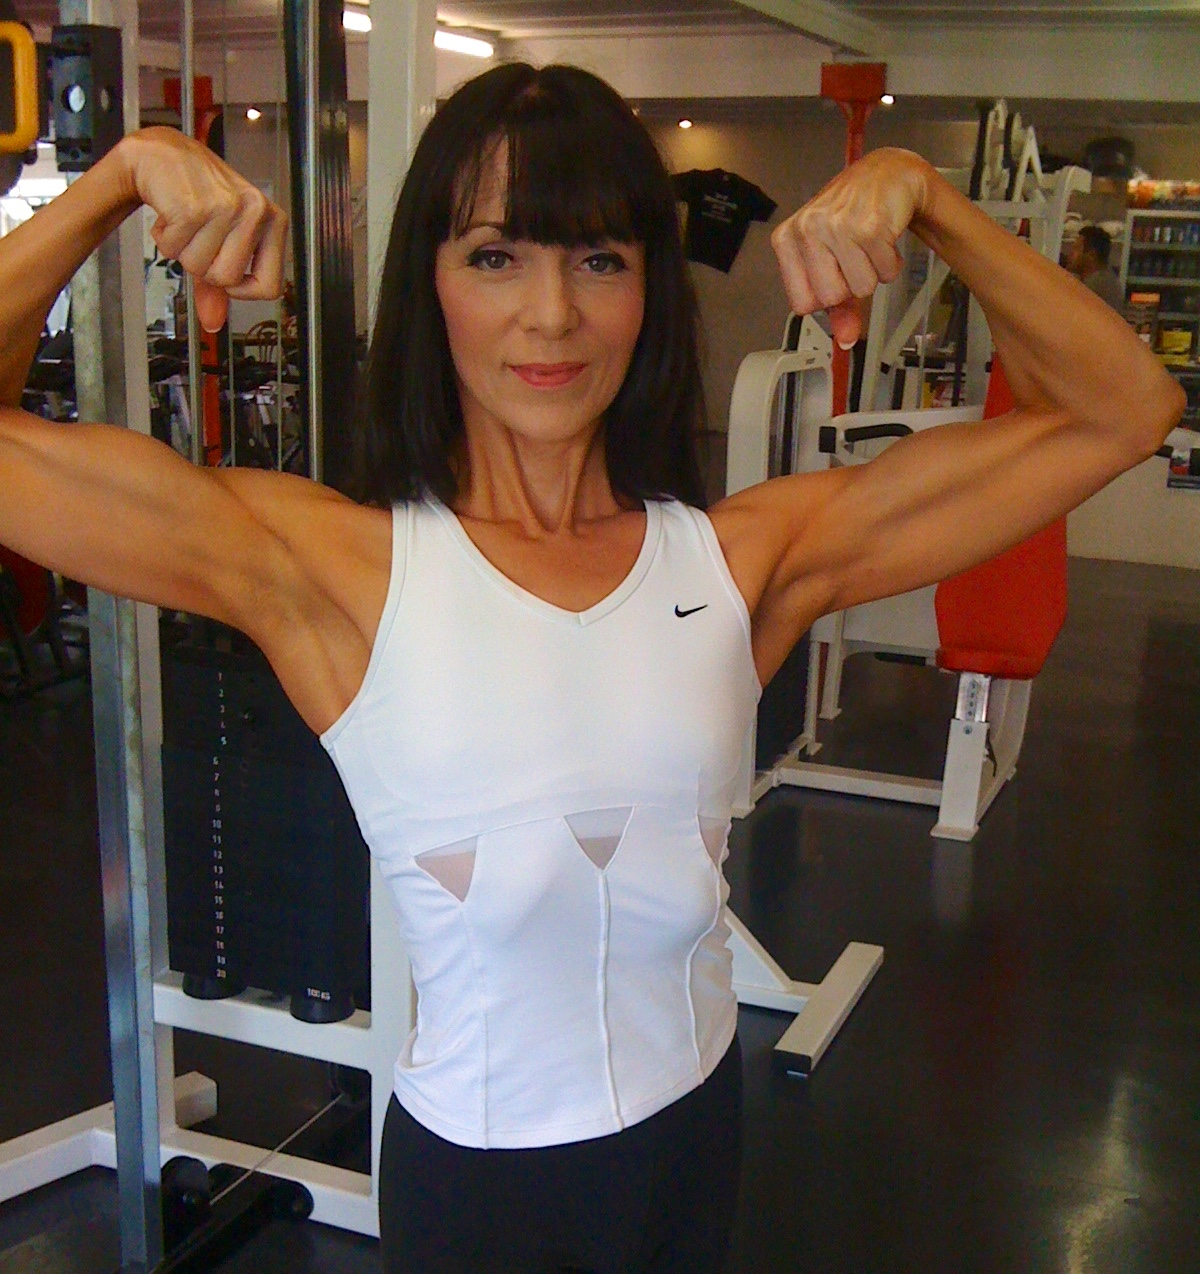 image of image: 17 of 21Debbie Francis Figure Athlete